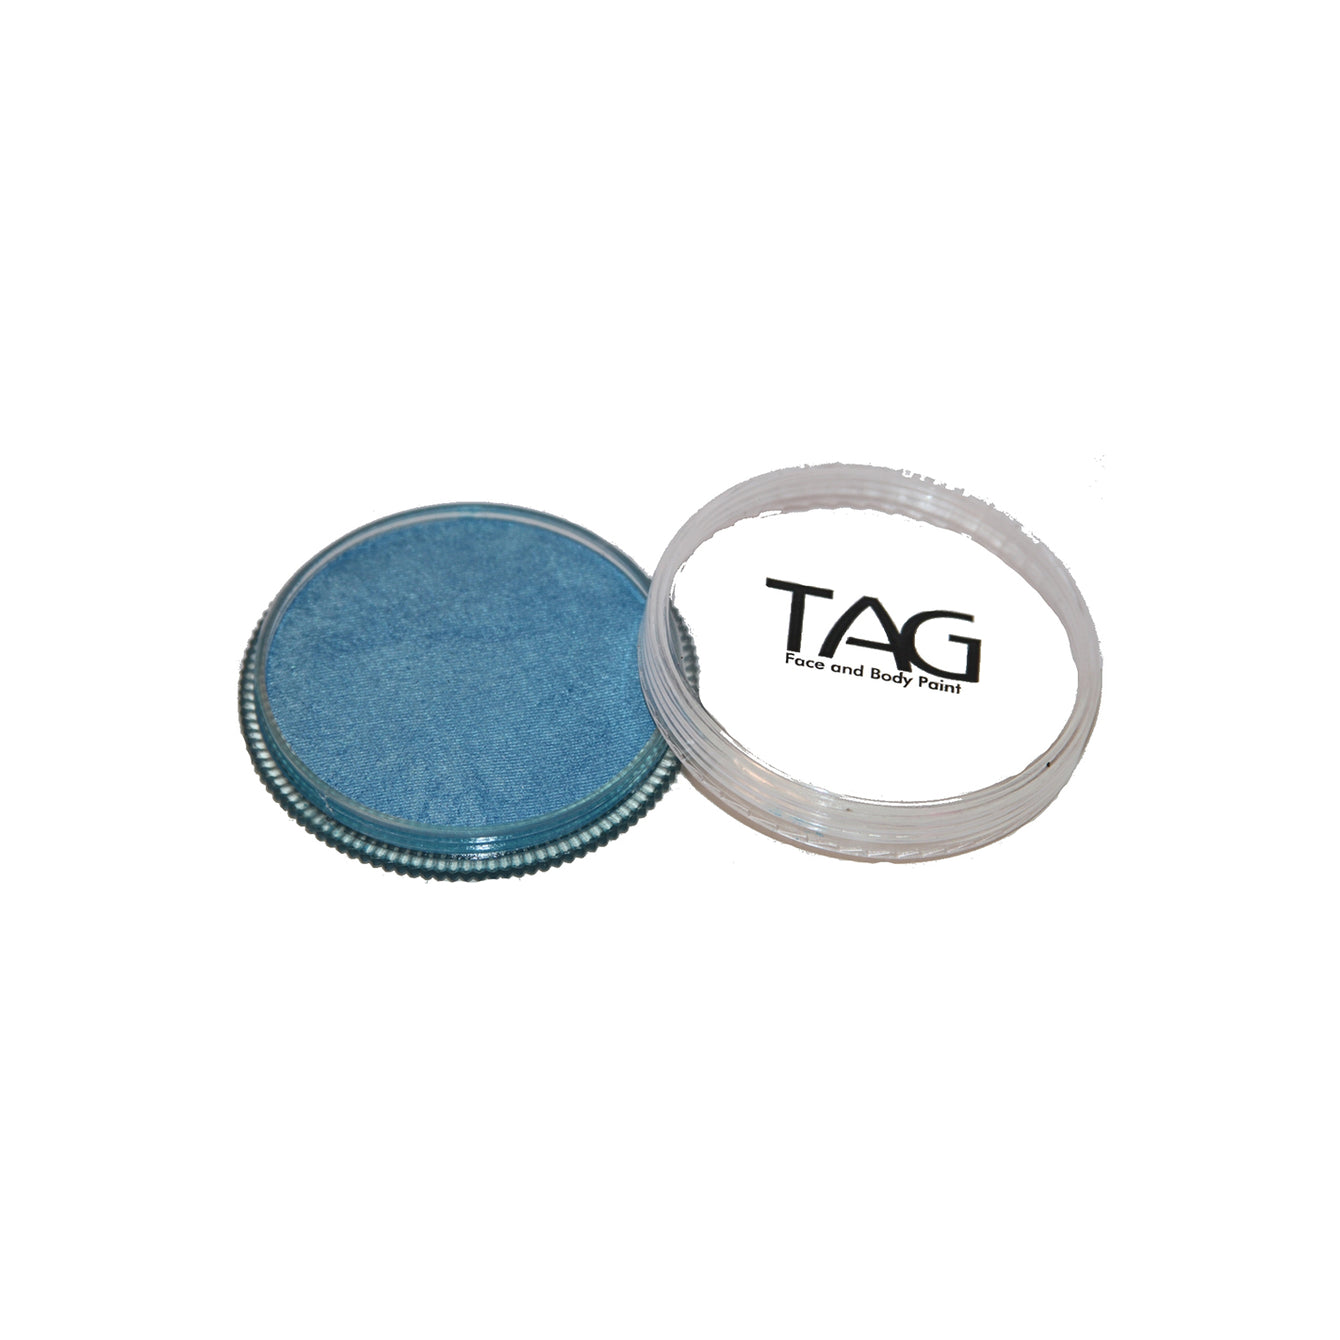 TAG Pearl Sky Blue Face and Body Paint 32g